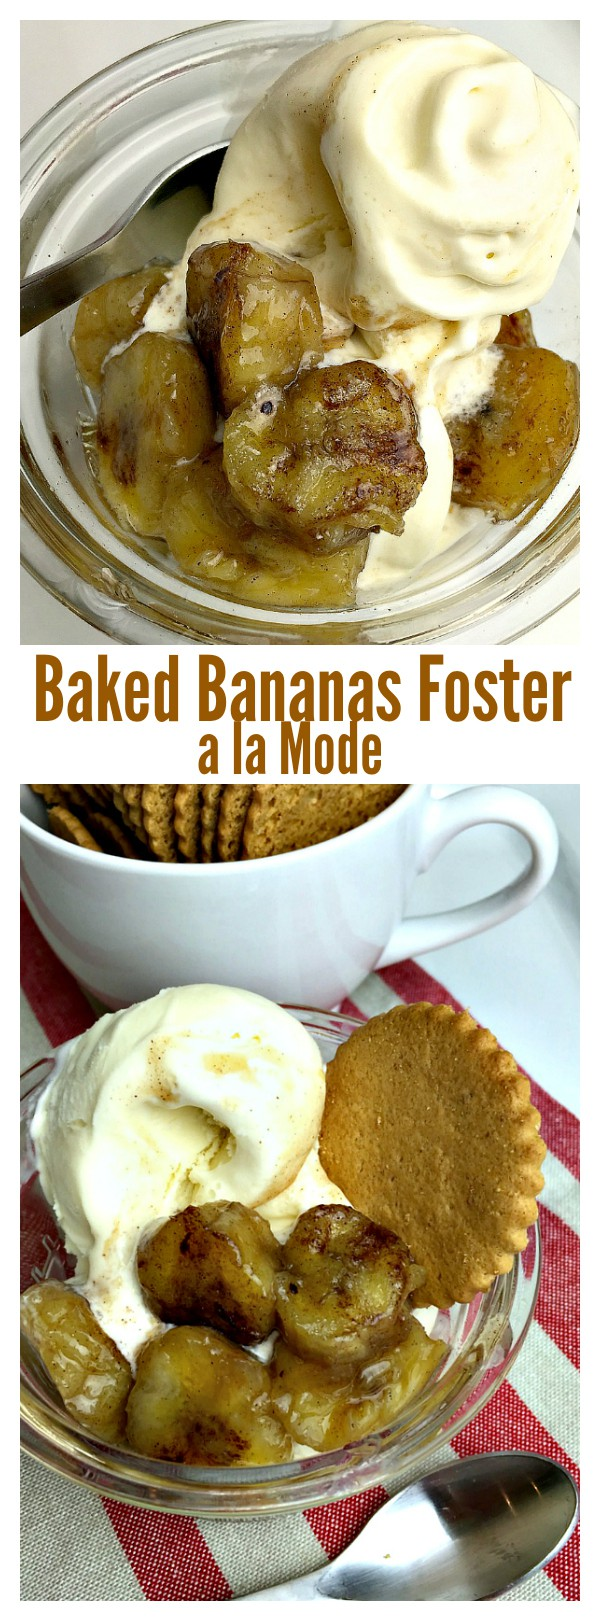 Baked Bananas Foster a la Mode